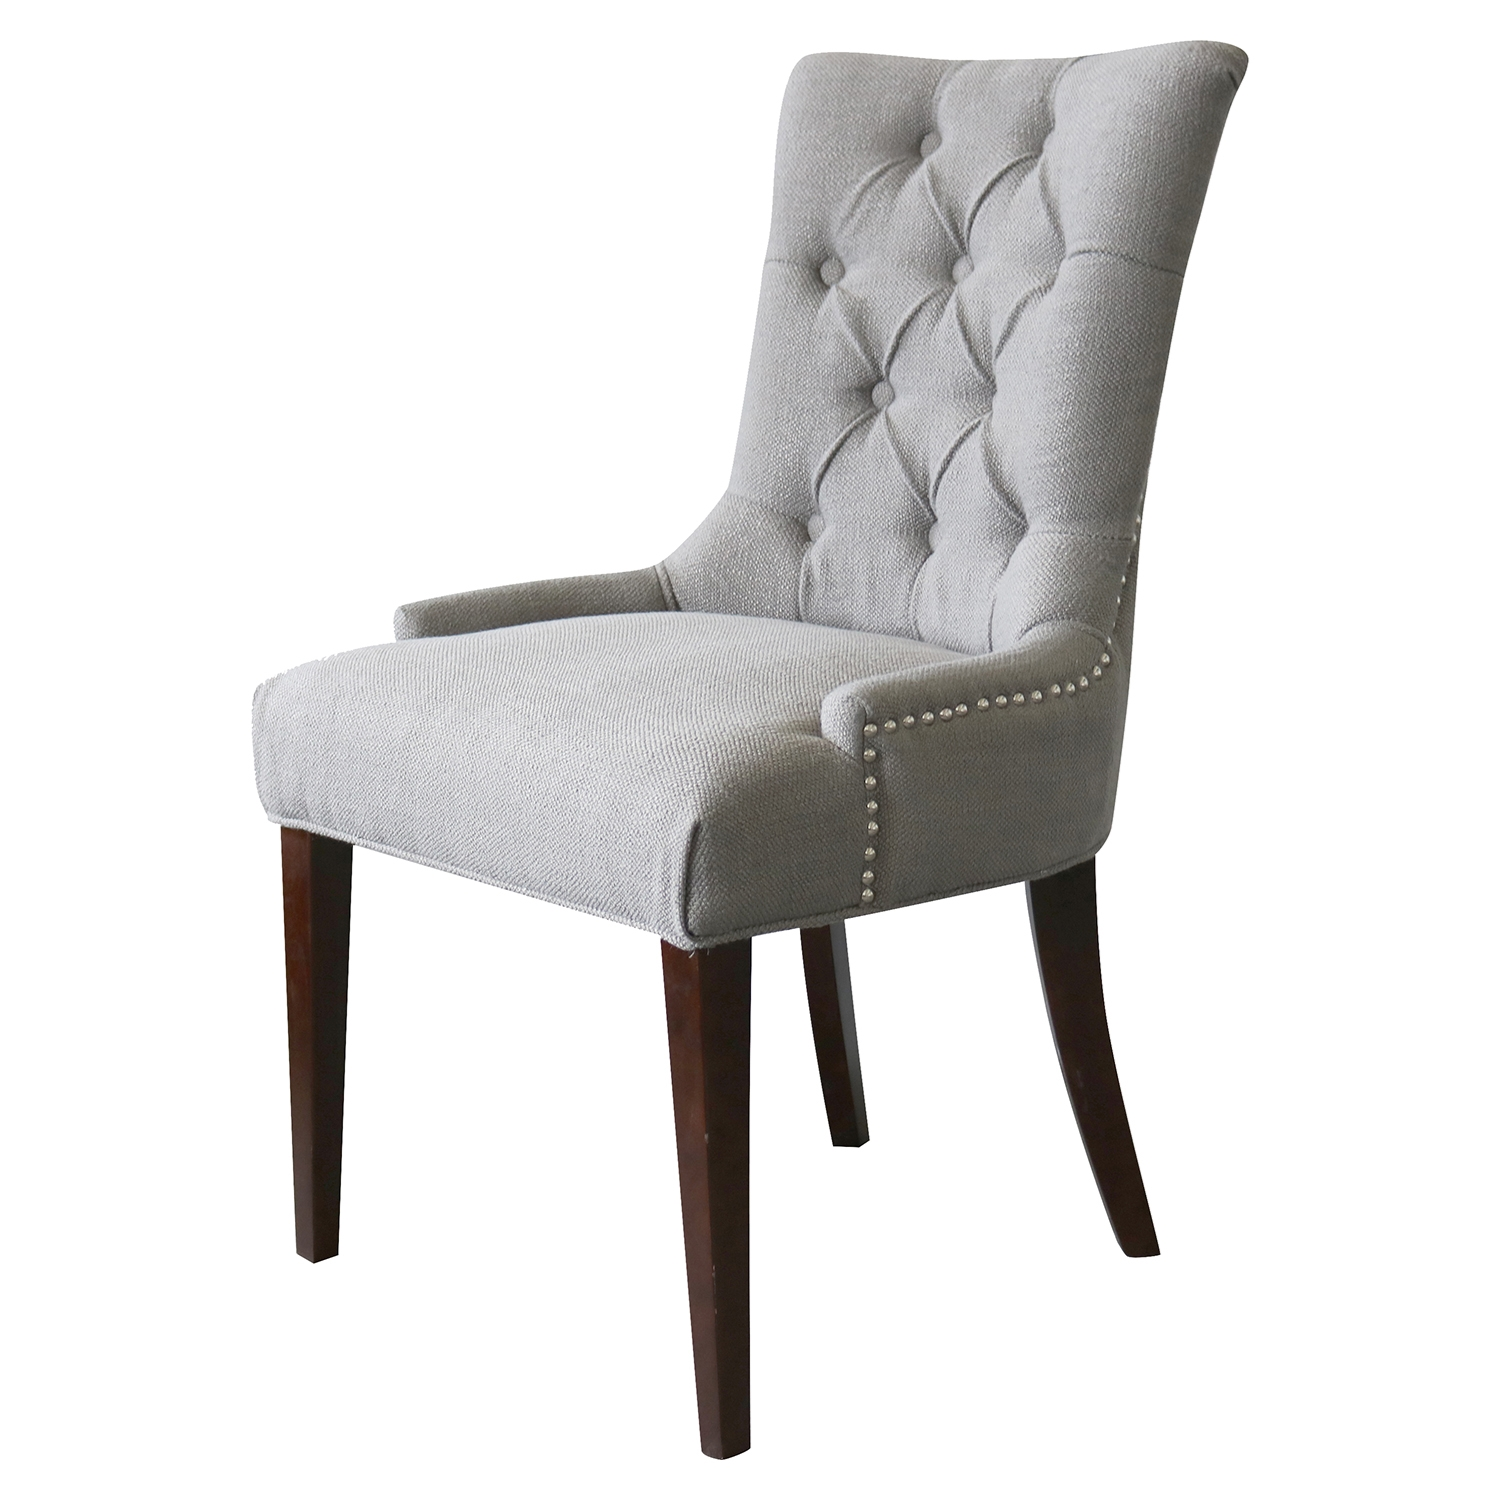 Madelyn Chair   Granite, Button Tufted   CP 200 05 ...